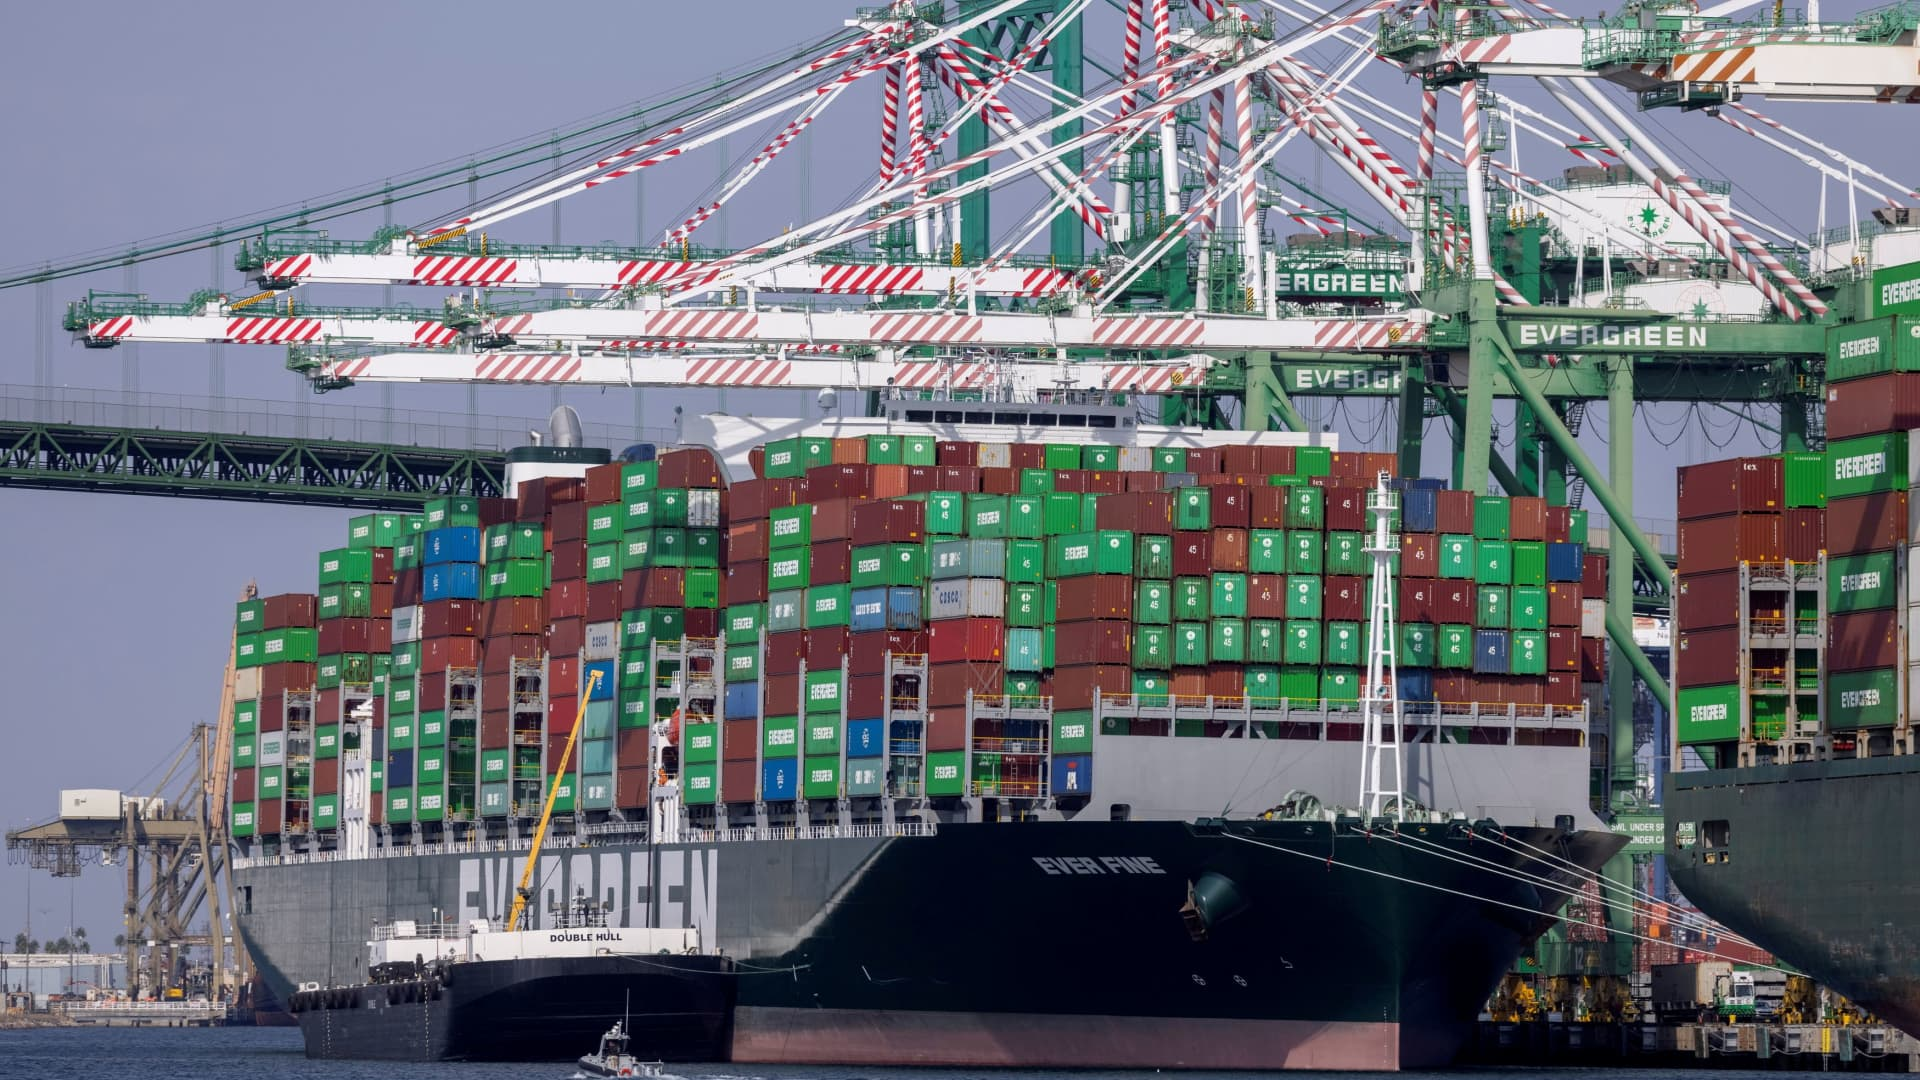 The congested Port of Los Angeles is shown in San Pedro, California, September 29, 2021.